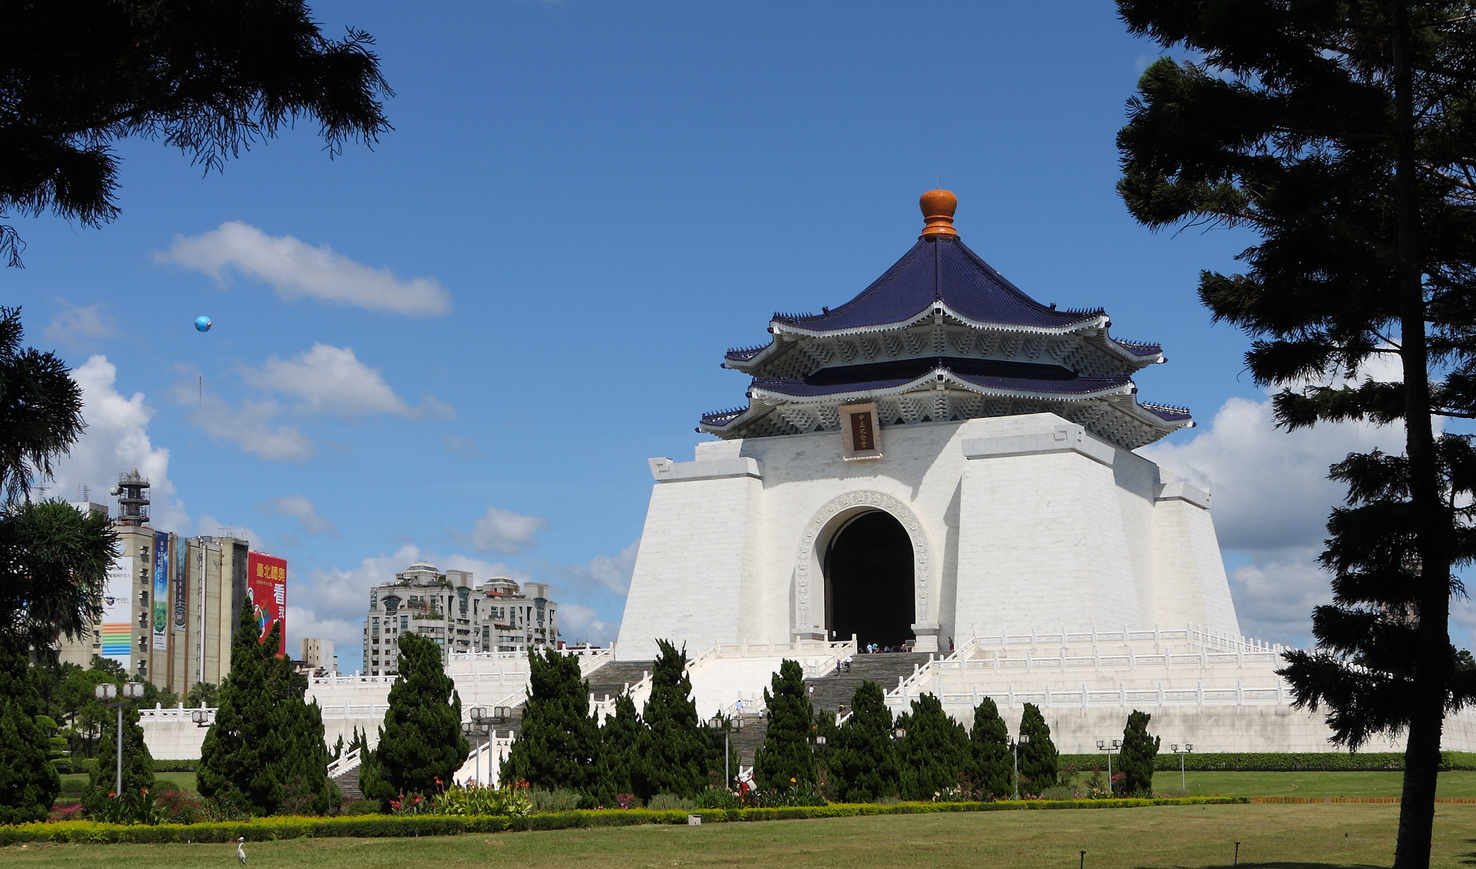 Large chiang kai shek memorial hall